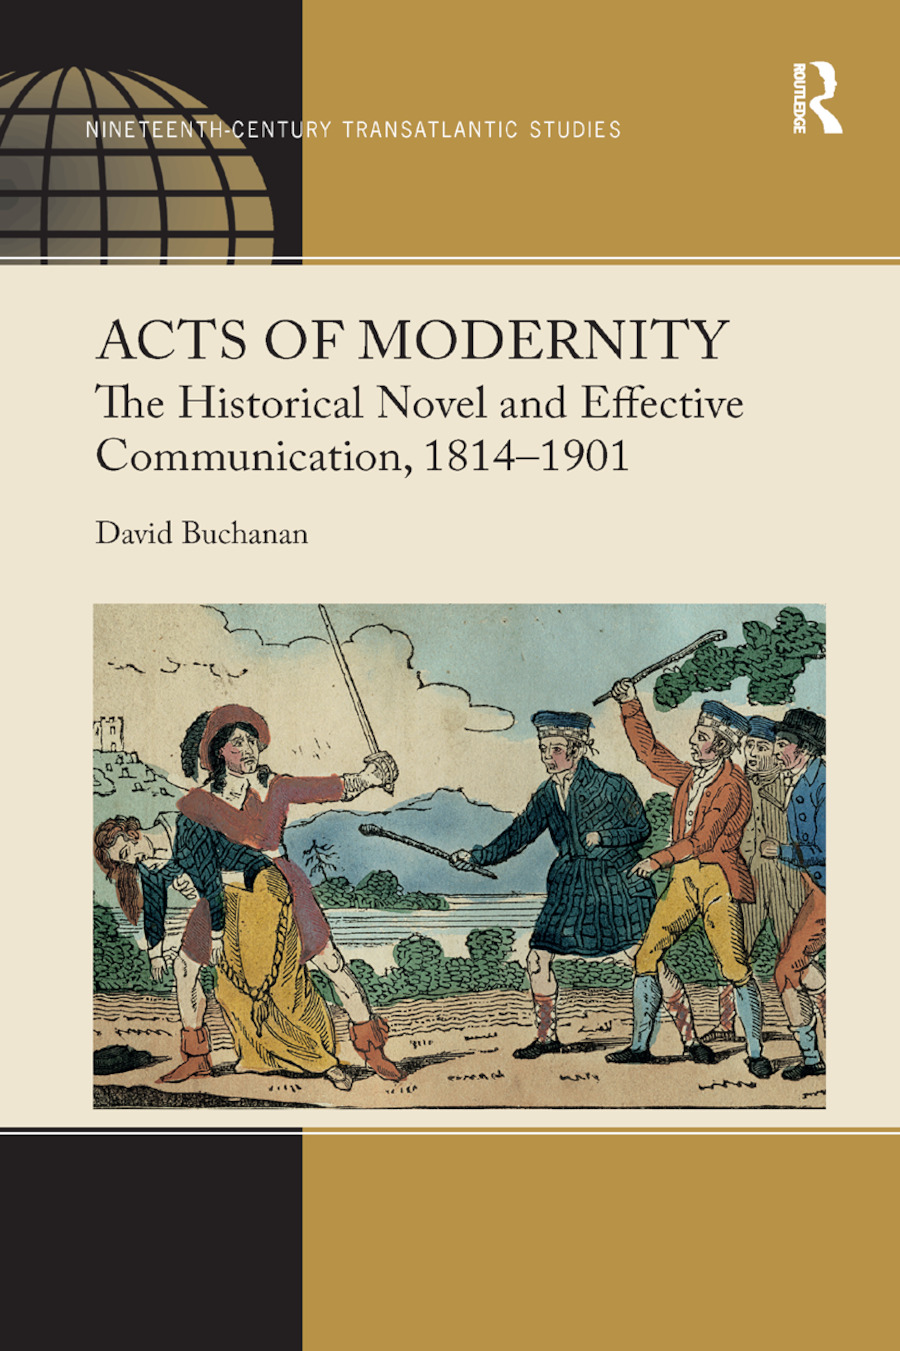 Acts of Modernity